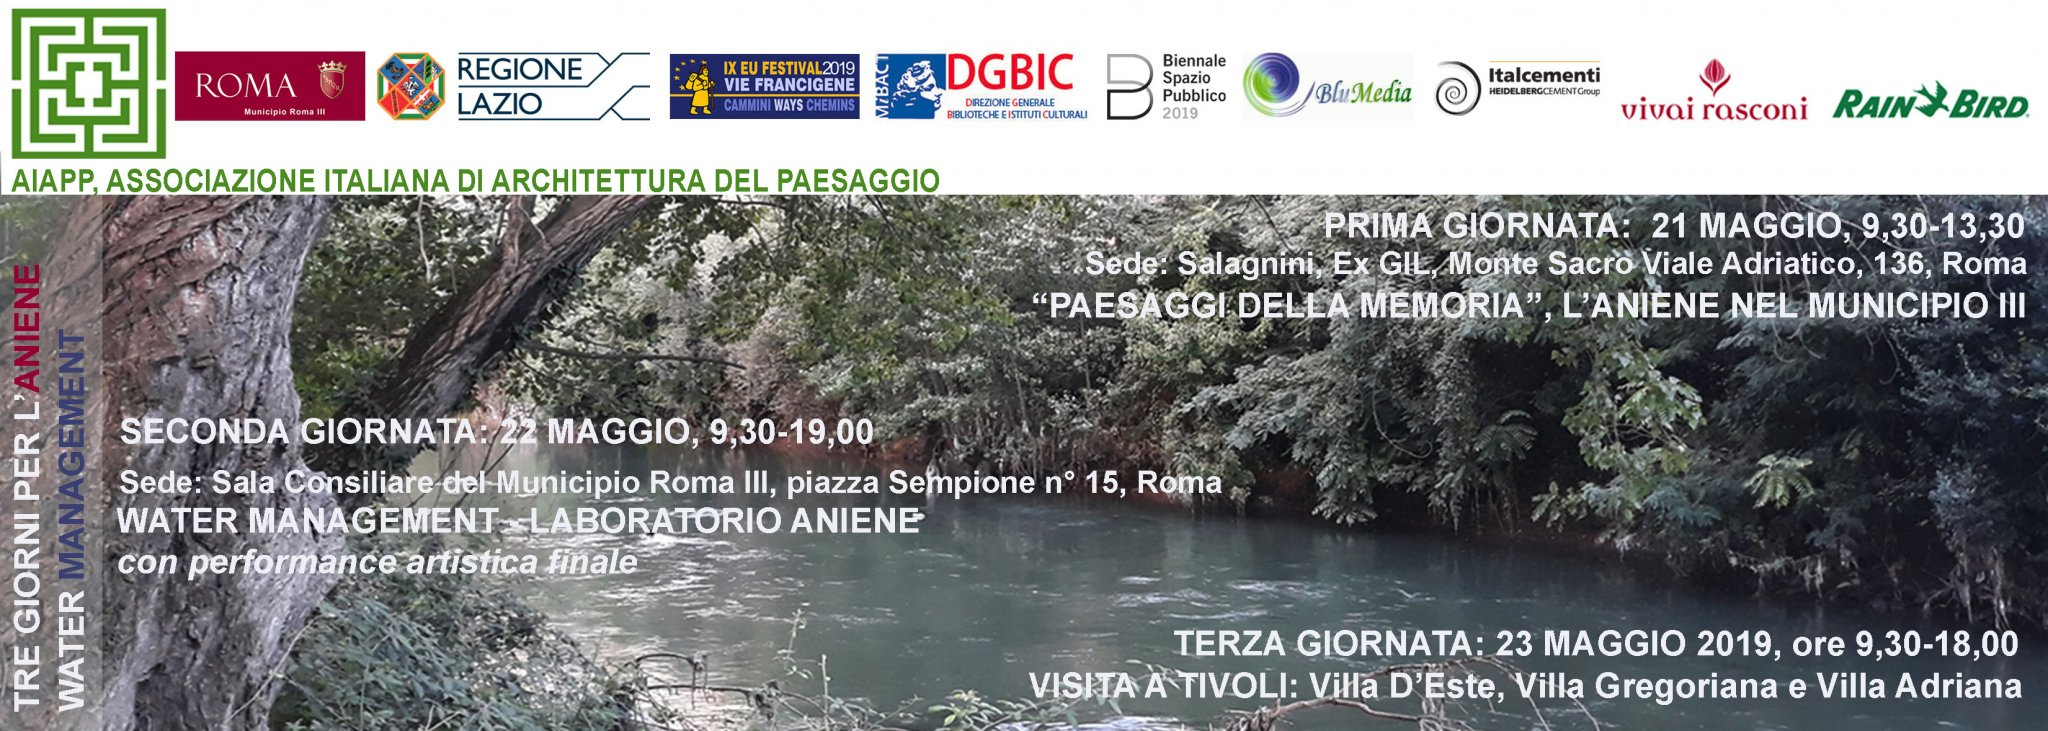 WATER MANAGEMENT - Laboratorio Aniene